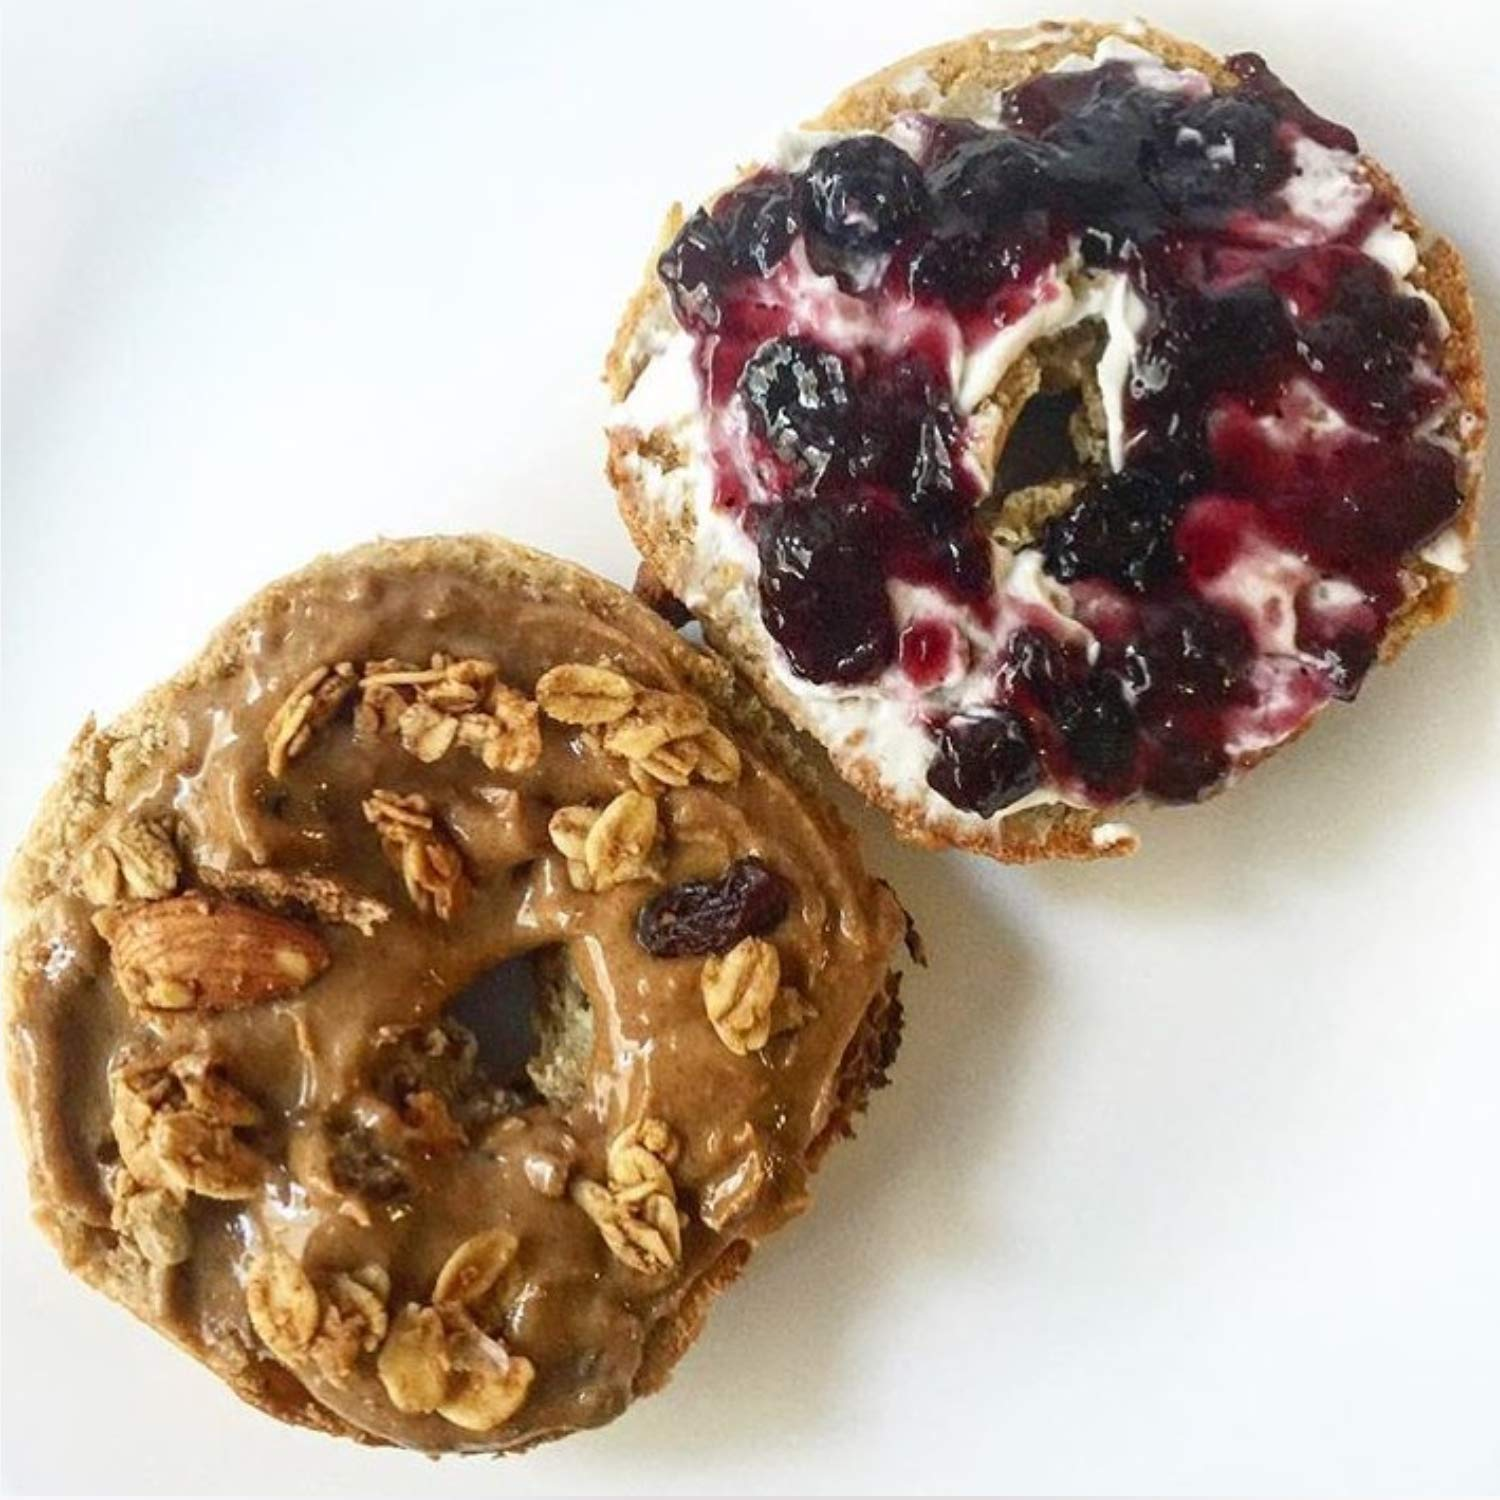 Greater Knead Gluten Free Bagel - Cinnamon Raisin - Vegan, non-GMO, Free of Wheat, Nuts, Soy, Peanuts, Tree Nuts (12 bagels) by The Greater Knead (Image #8)